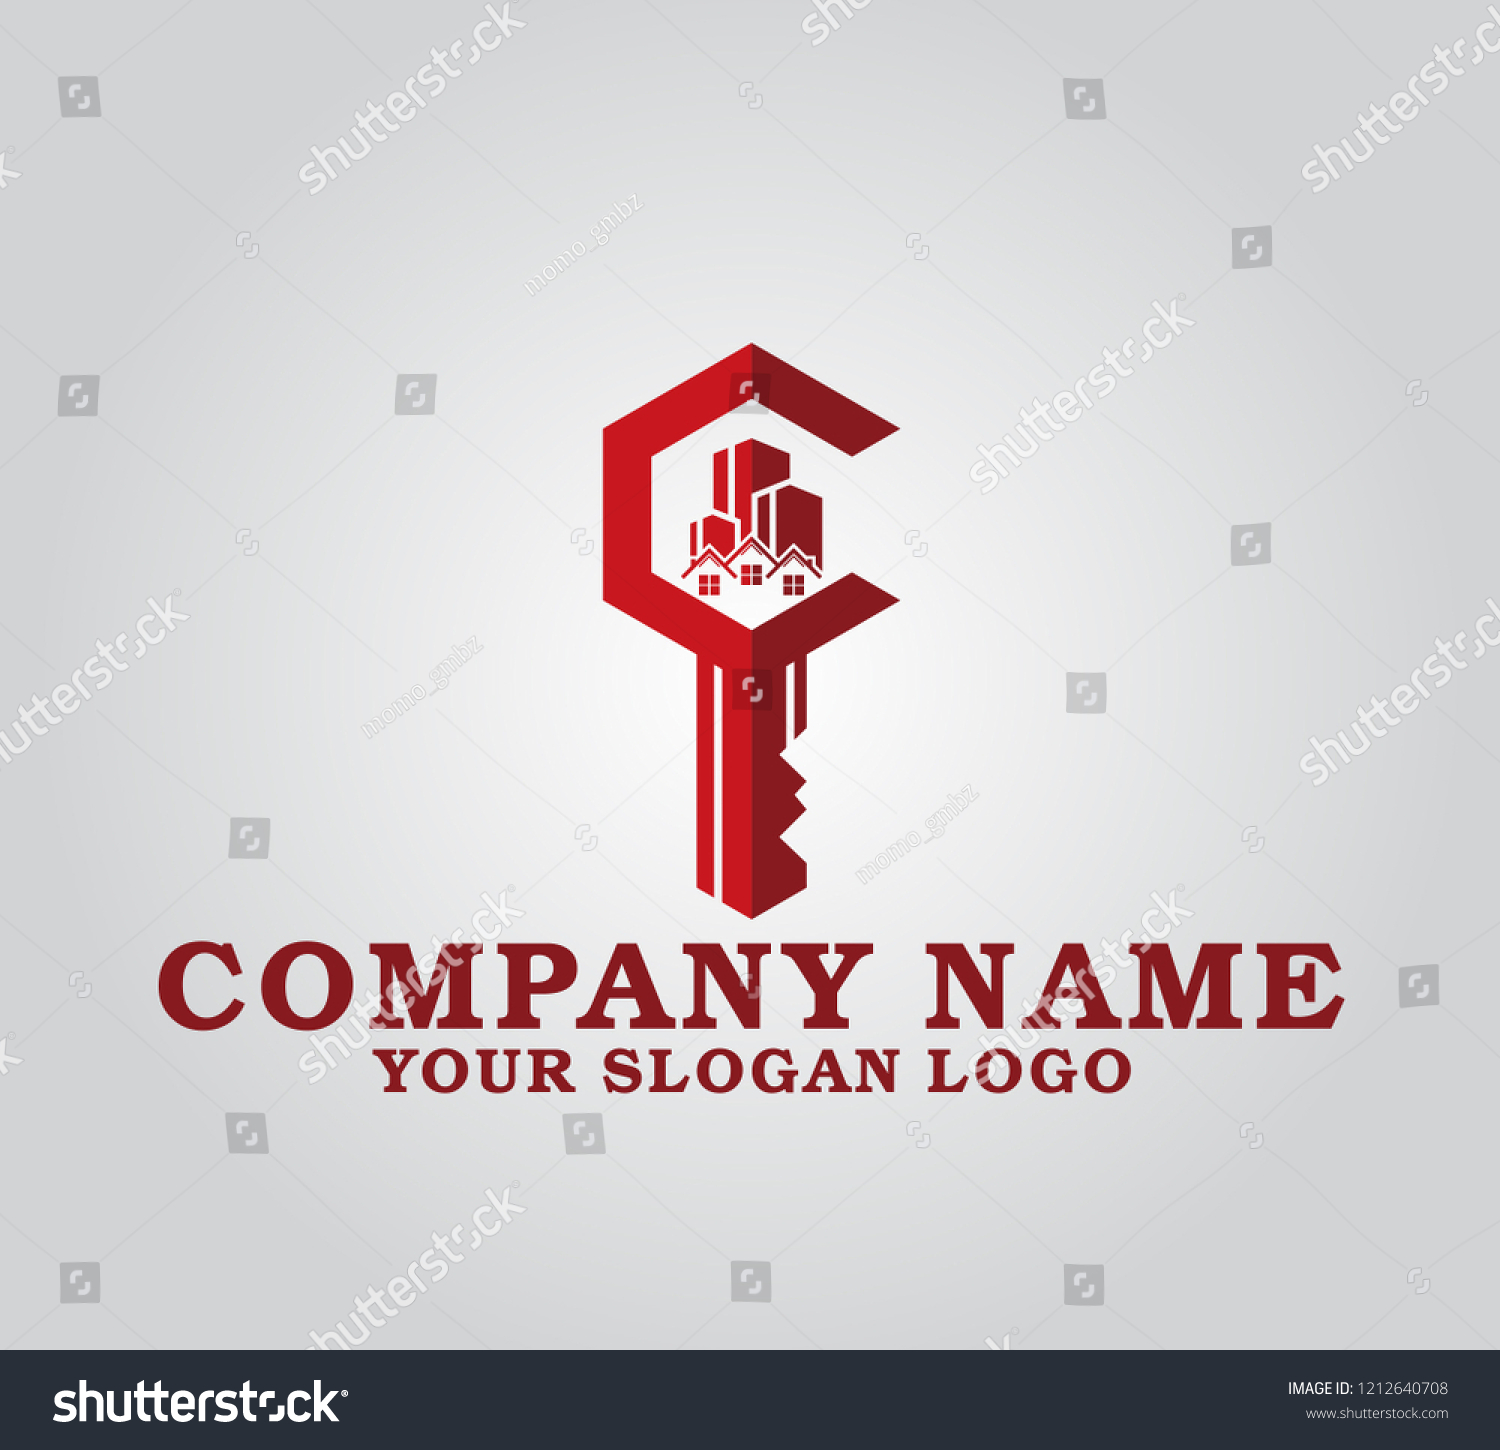 88ed9381d1 Key Success Buying Housing Young Groups Stock Vector (Royalty Free ...